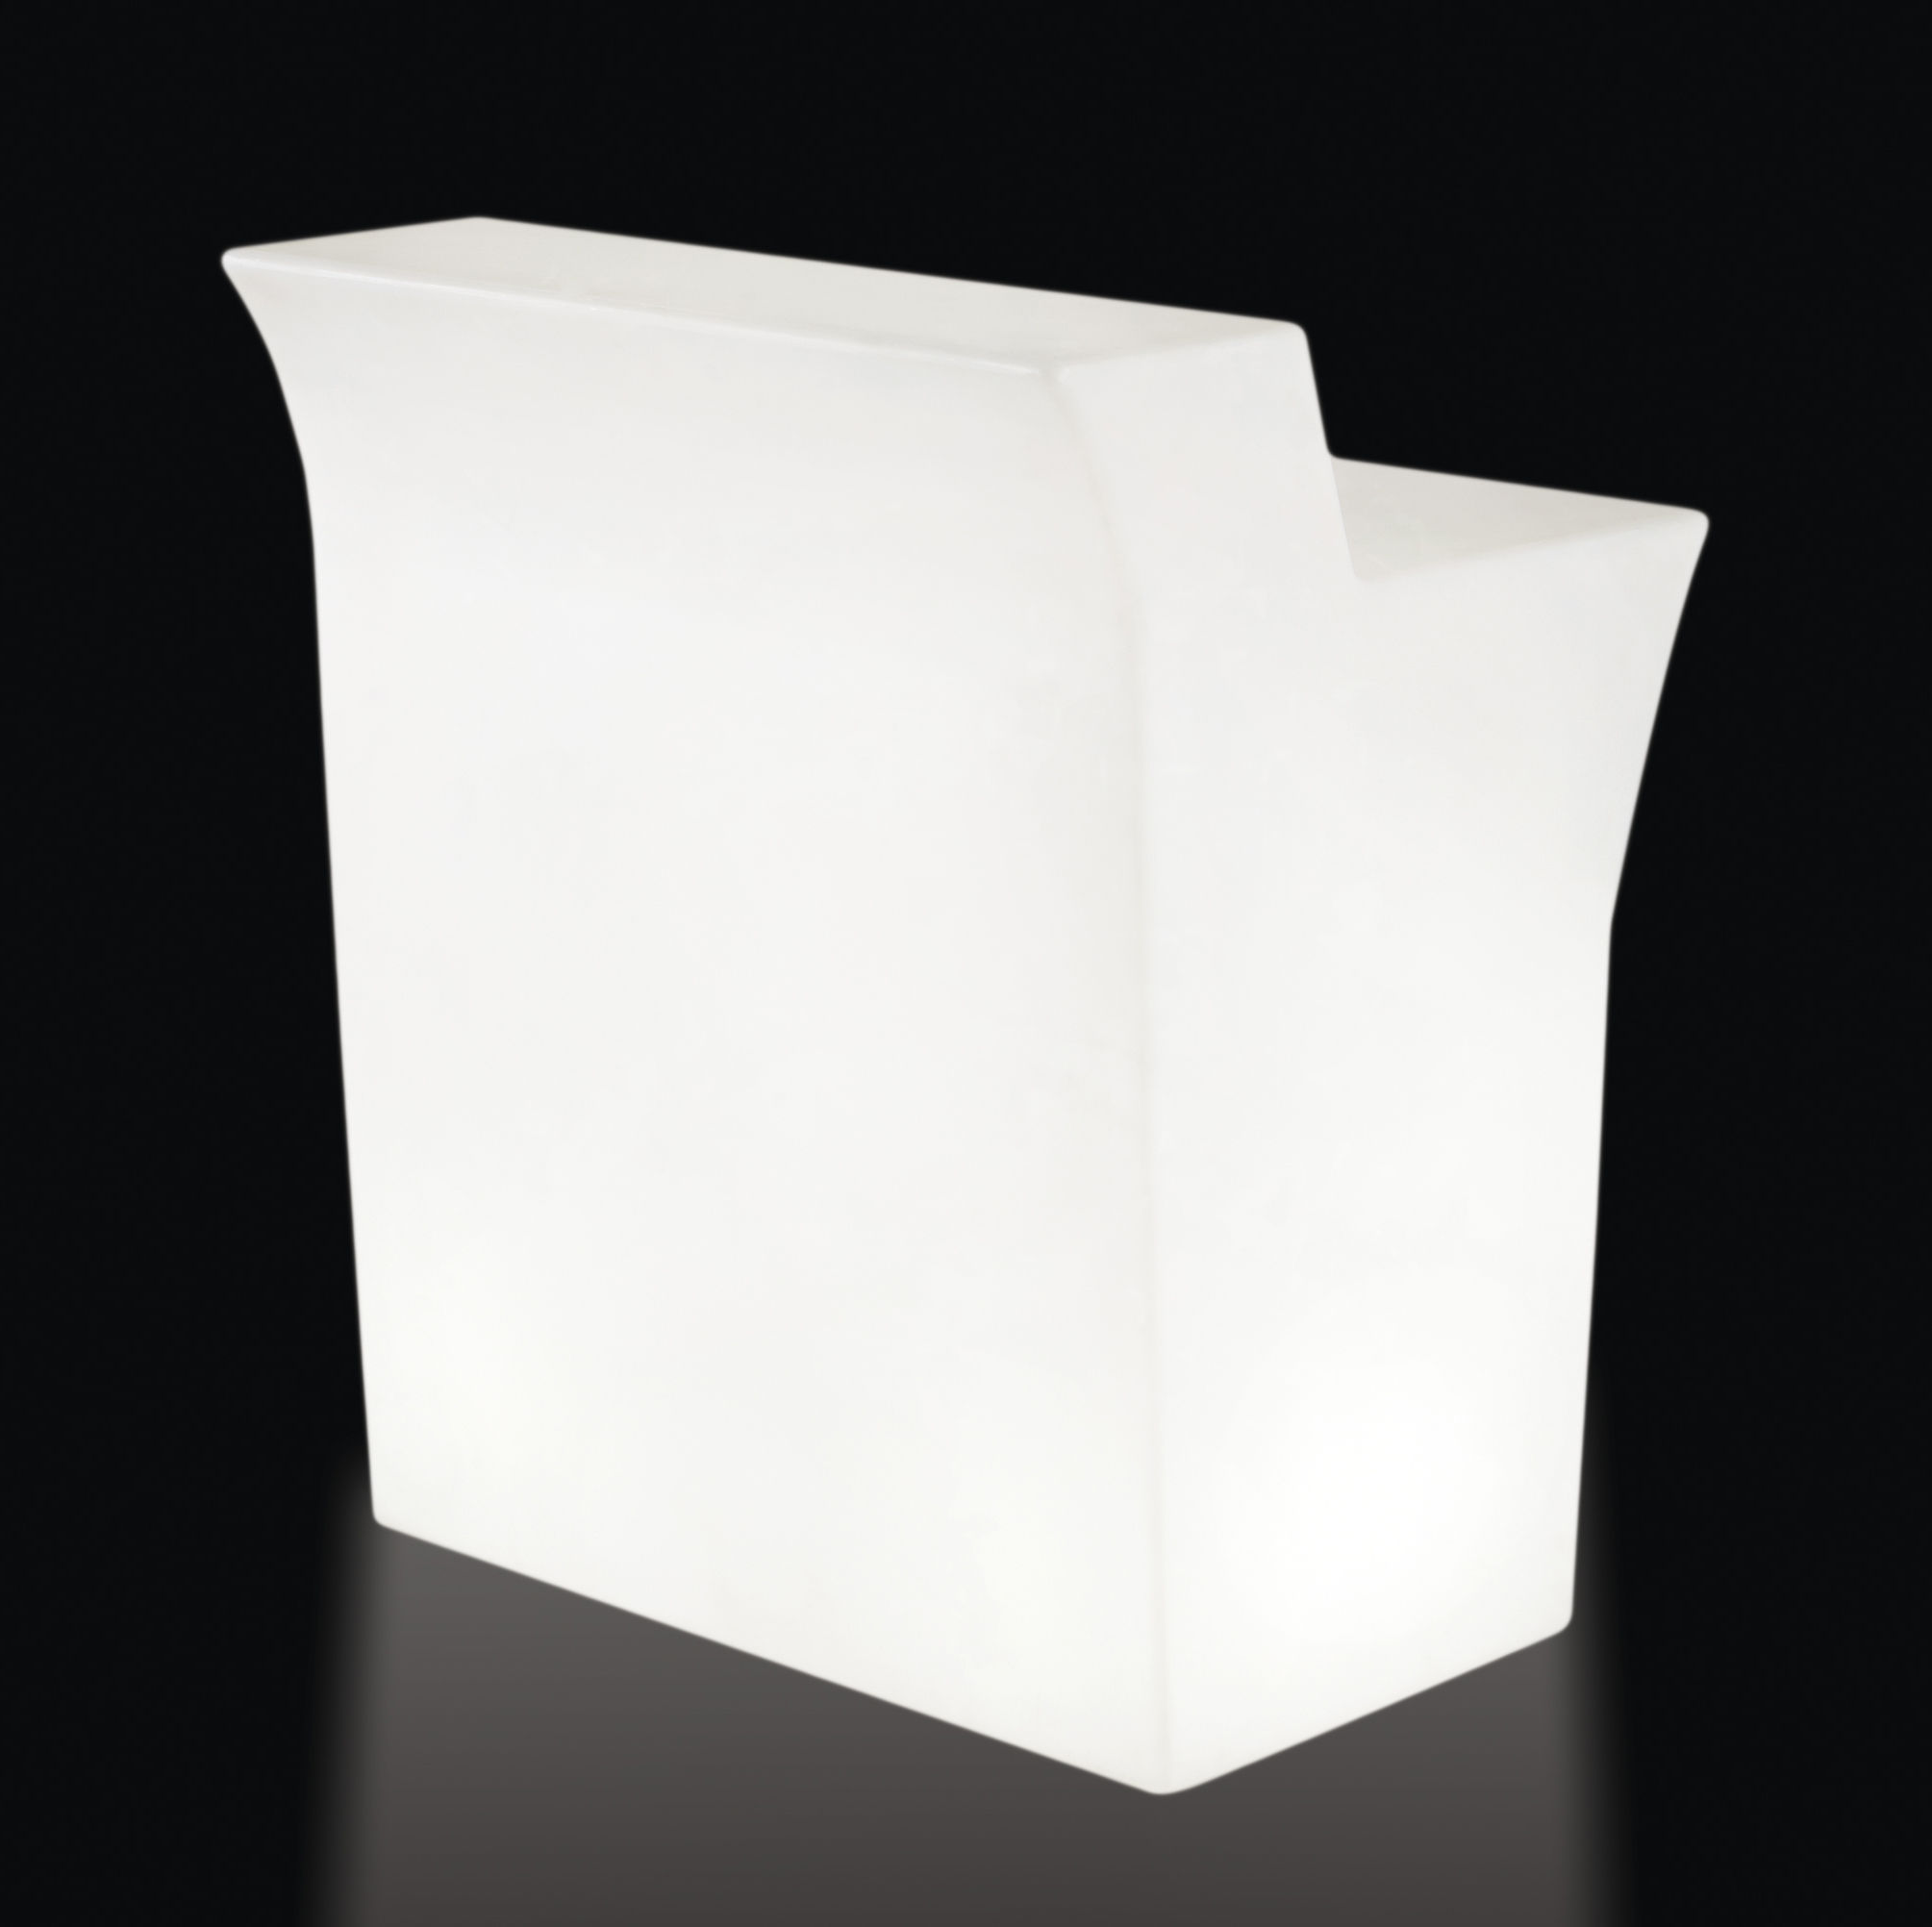 Furniture - High Tables - Jumbo Luminous bar - Right component by Slide - White - recyclable polyethylene